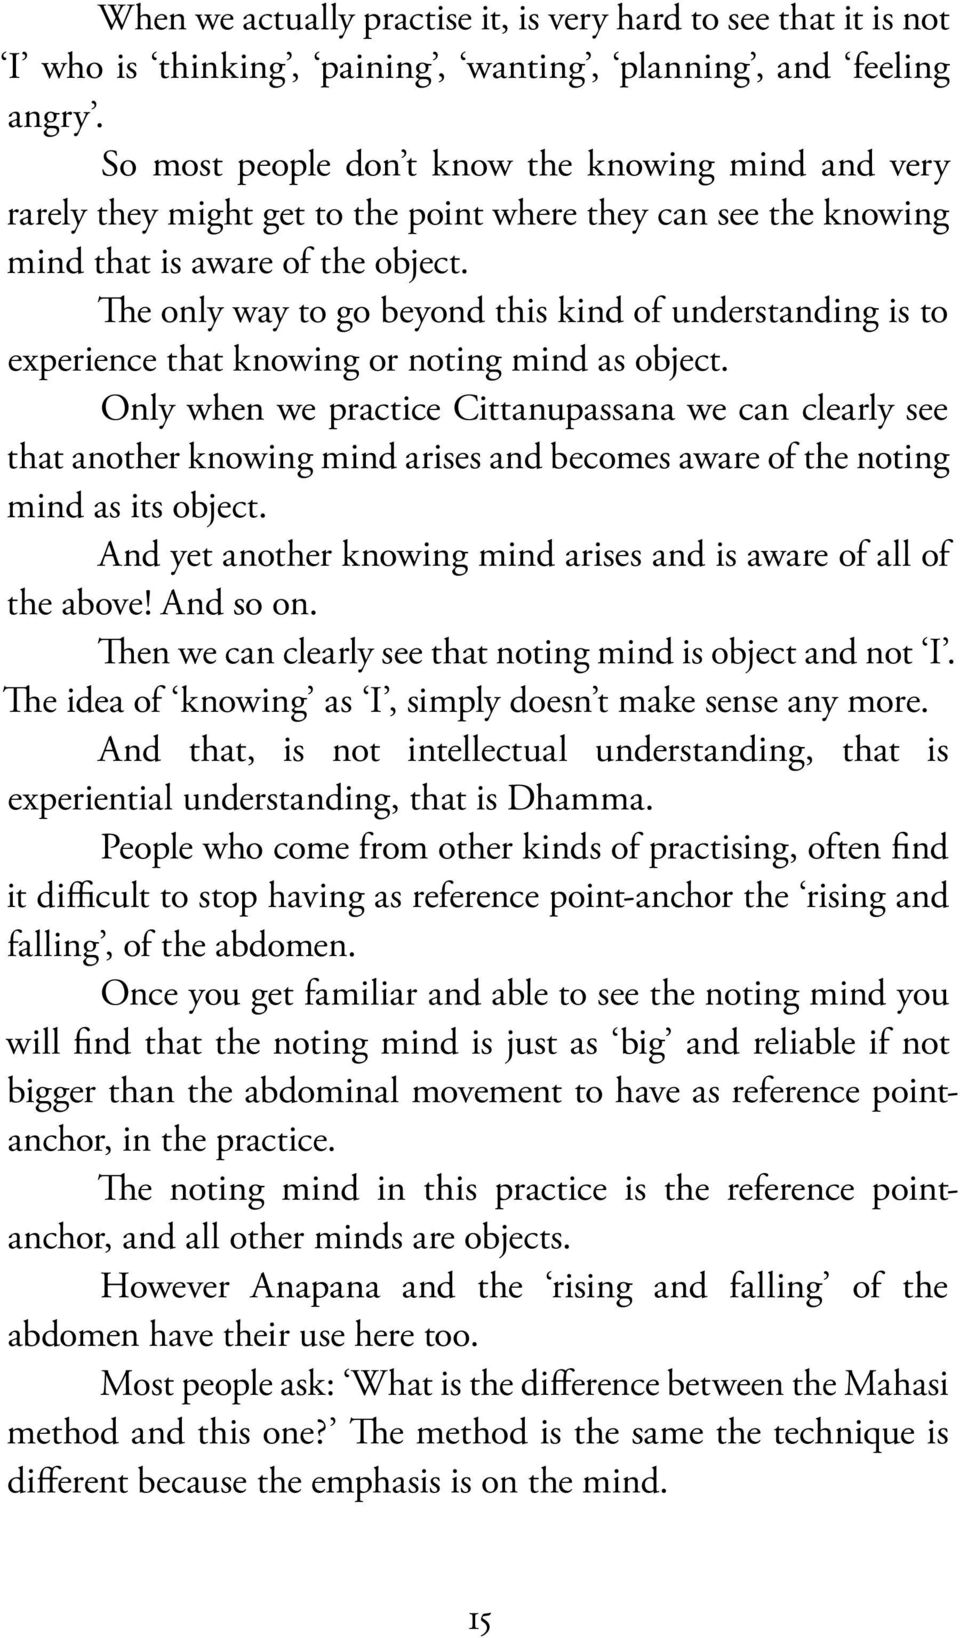 e only way to go beyond this kind of understanding is to experience that knowing or noting mind as object.